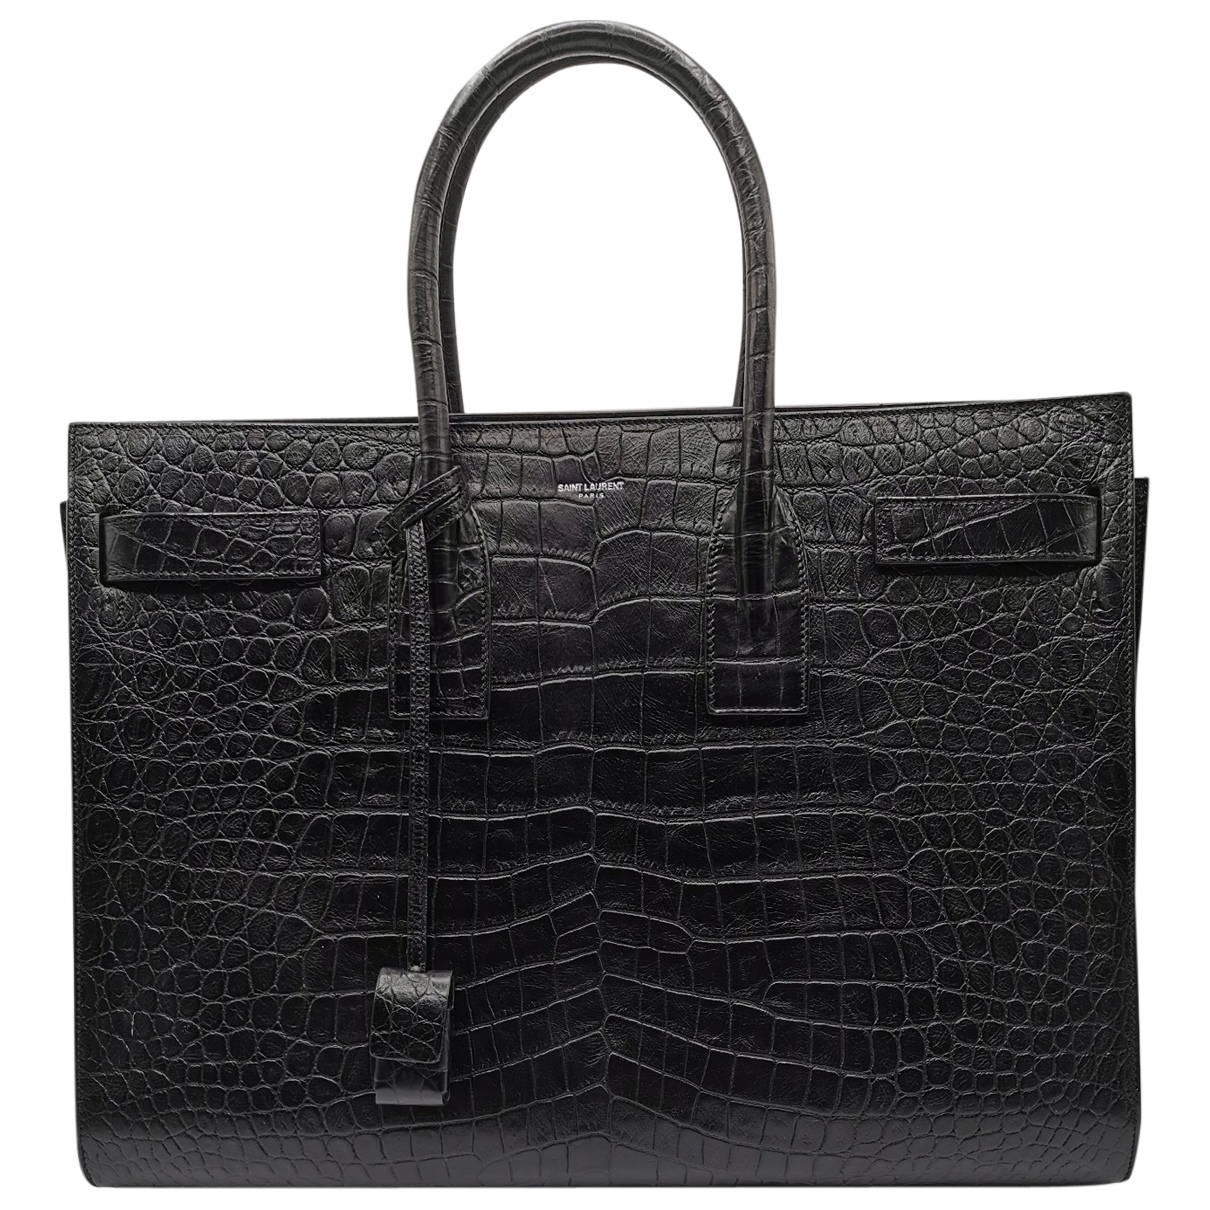 Saint Laurent Sac de Jour Black Leather handbag for Women \N